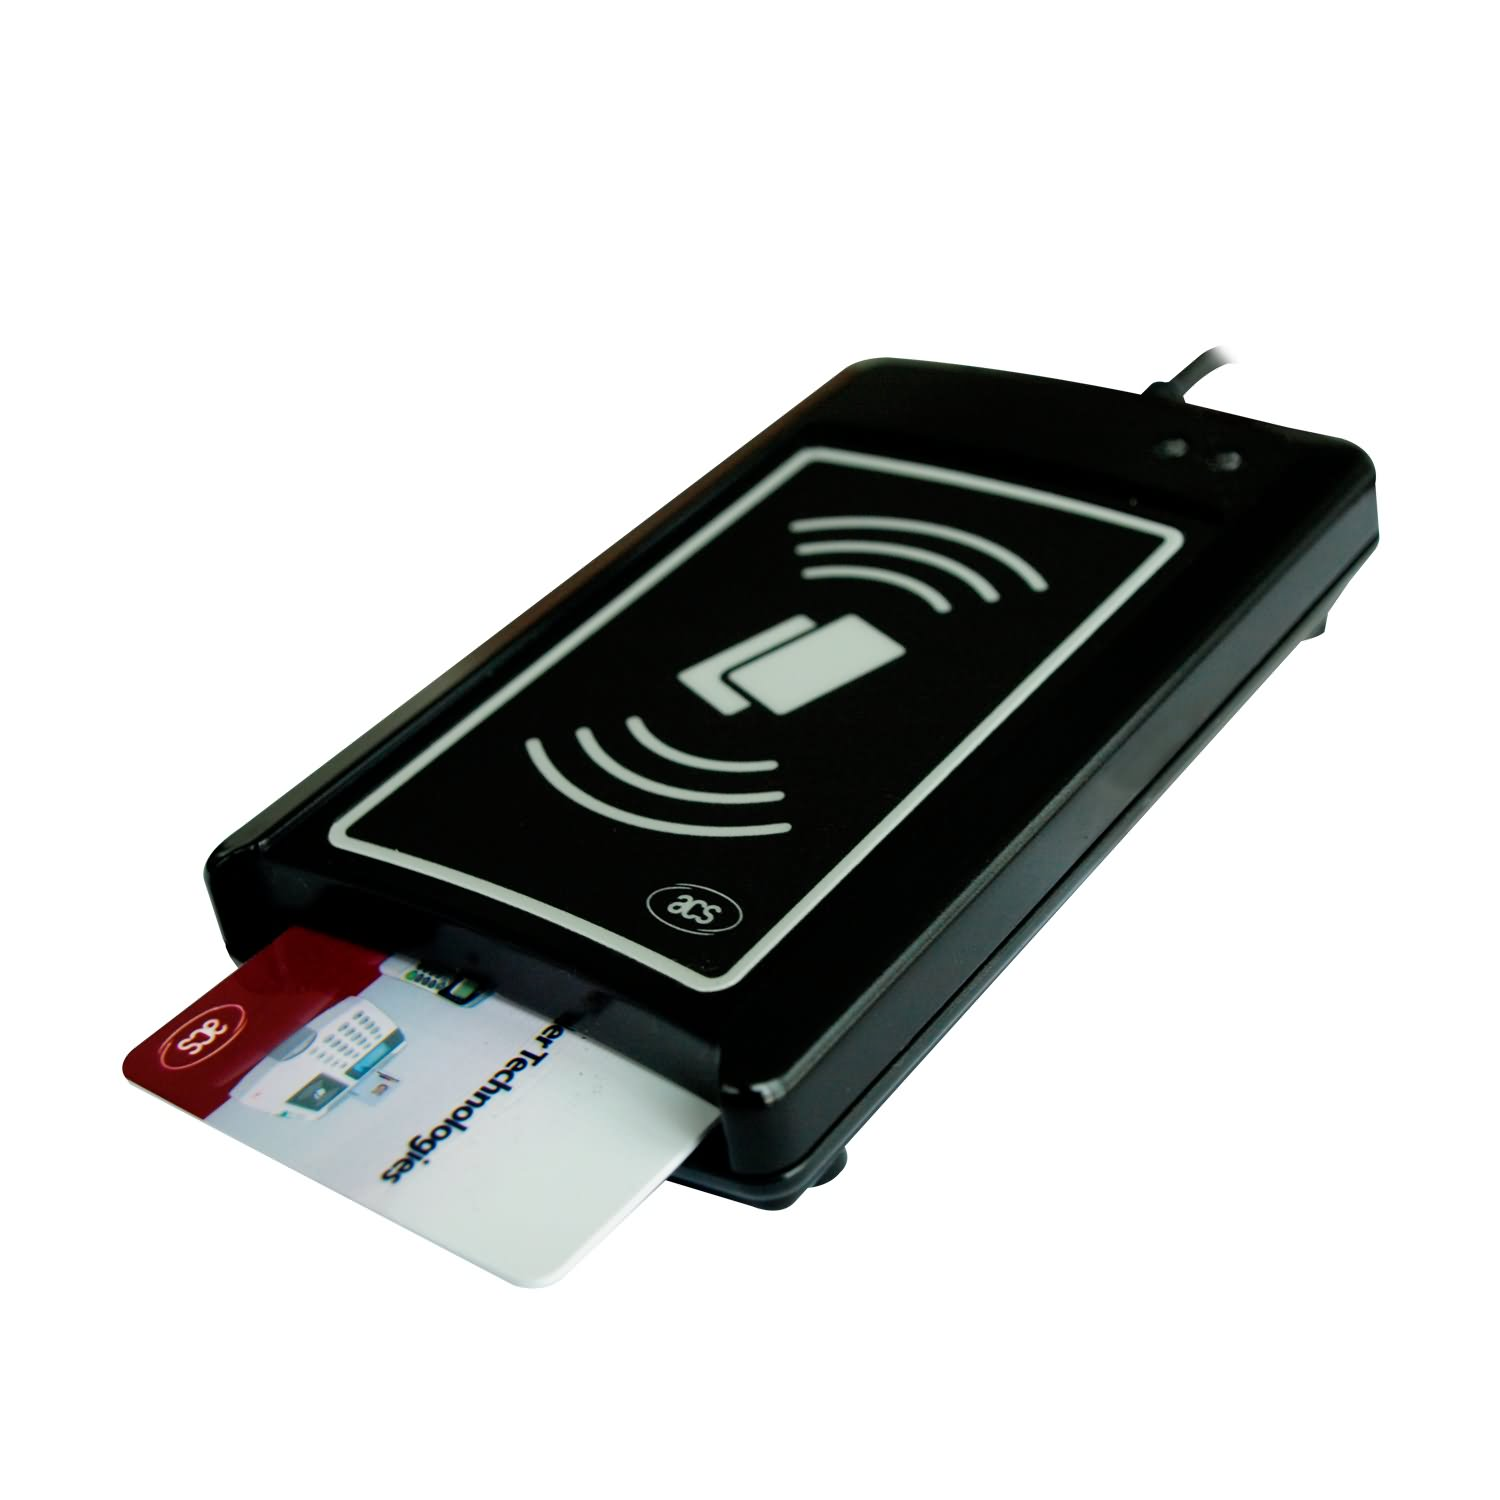 ACR1281U-C1 Dual Interface nfc reader writer Featured Image